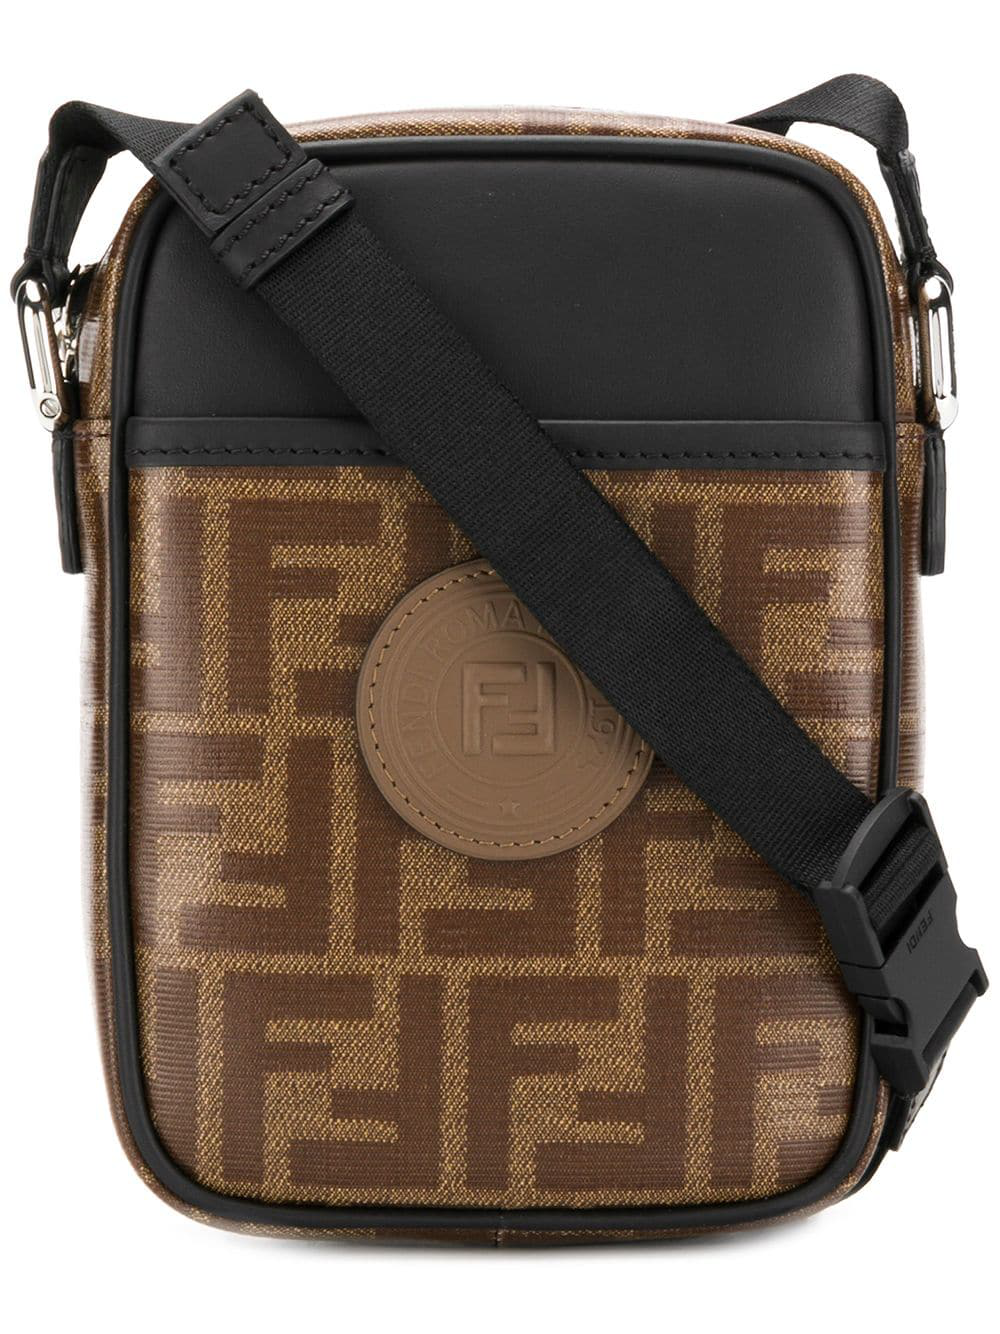 34346e438c13 Fendi Ff Vertificato Camera Bag In F14Tw Mogano